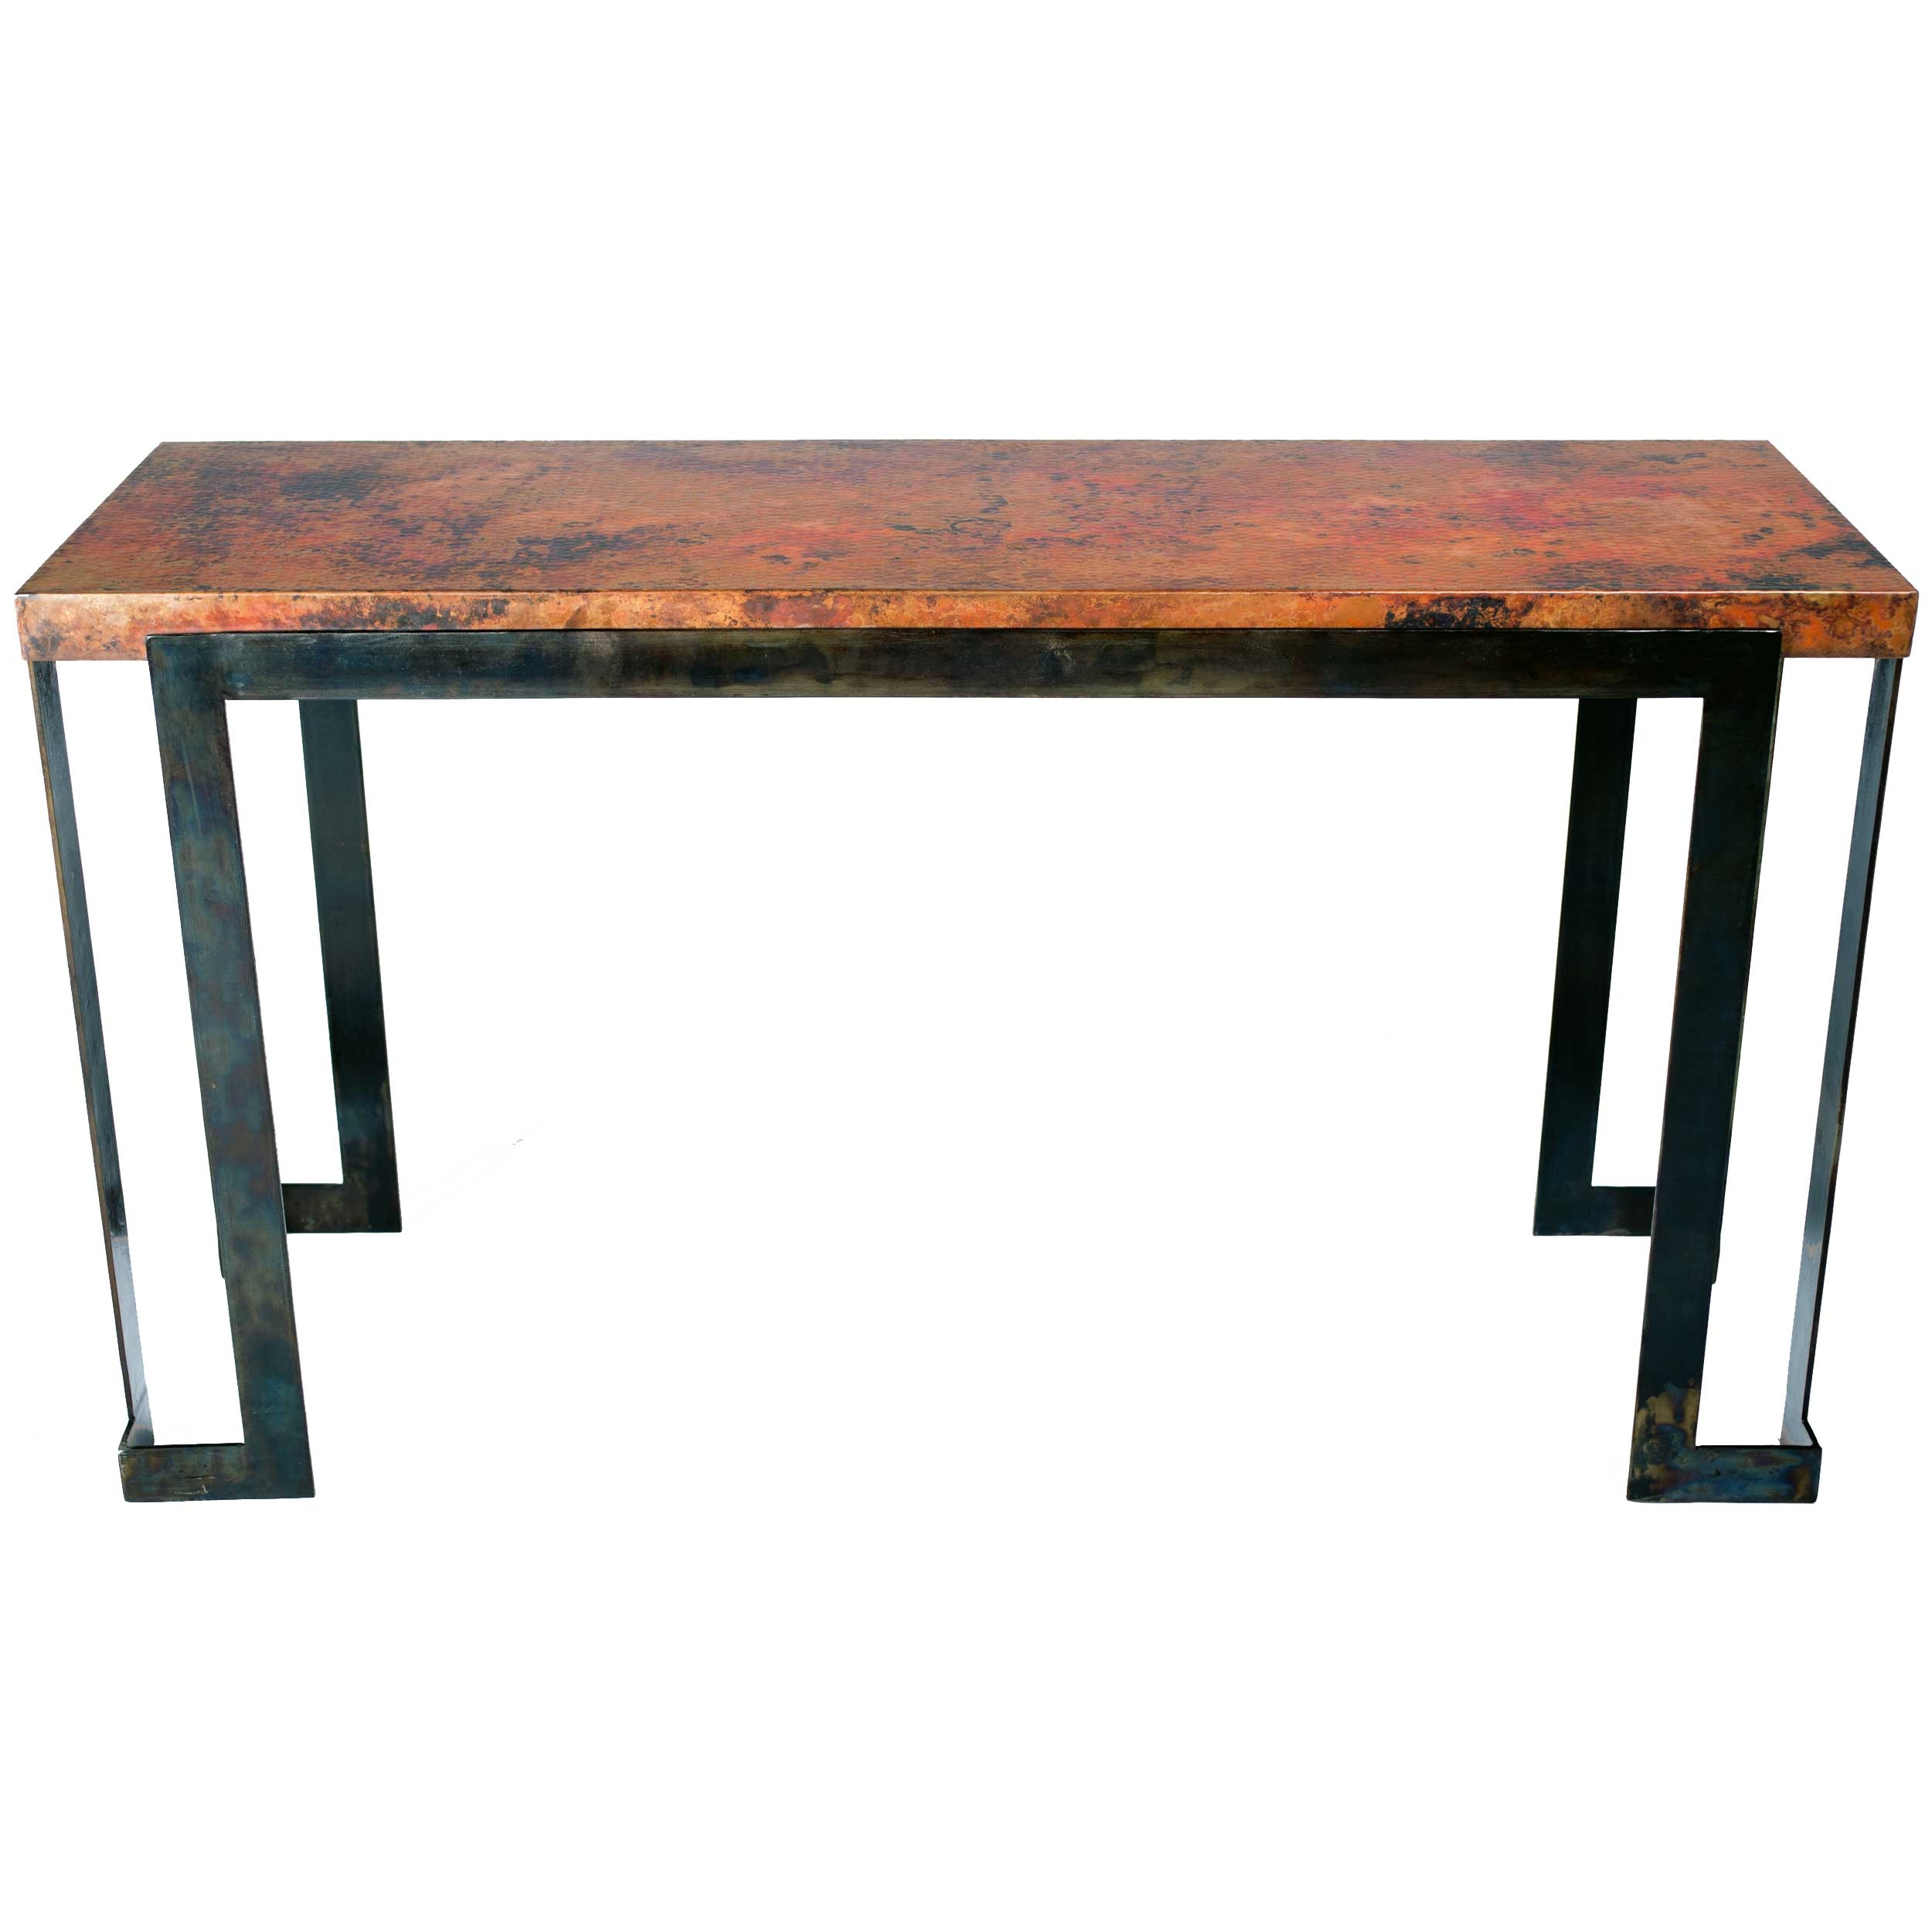 Steel Strap Console Table With Hammered